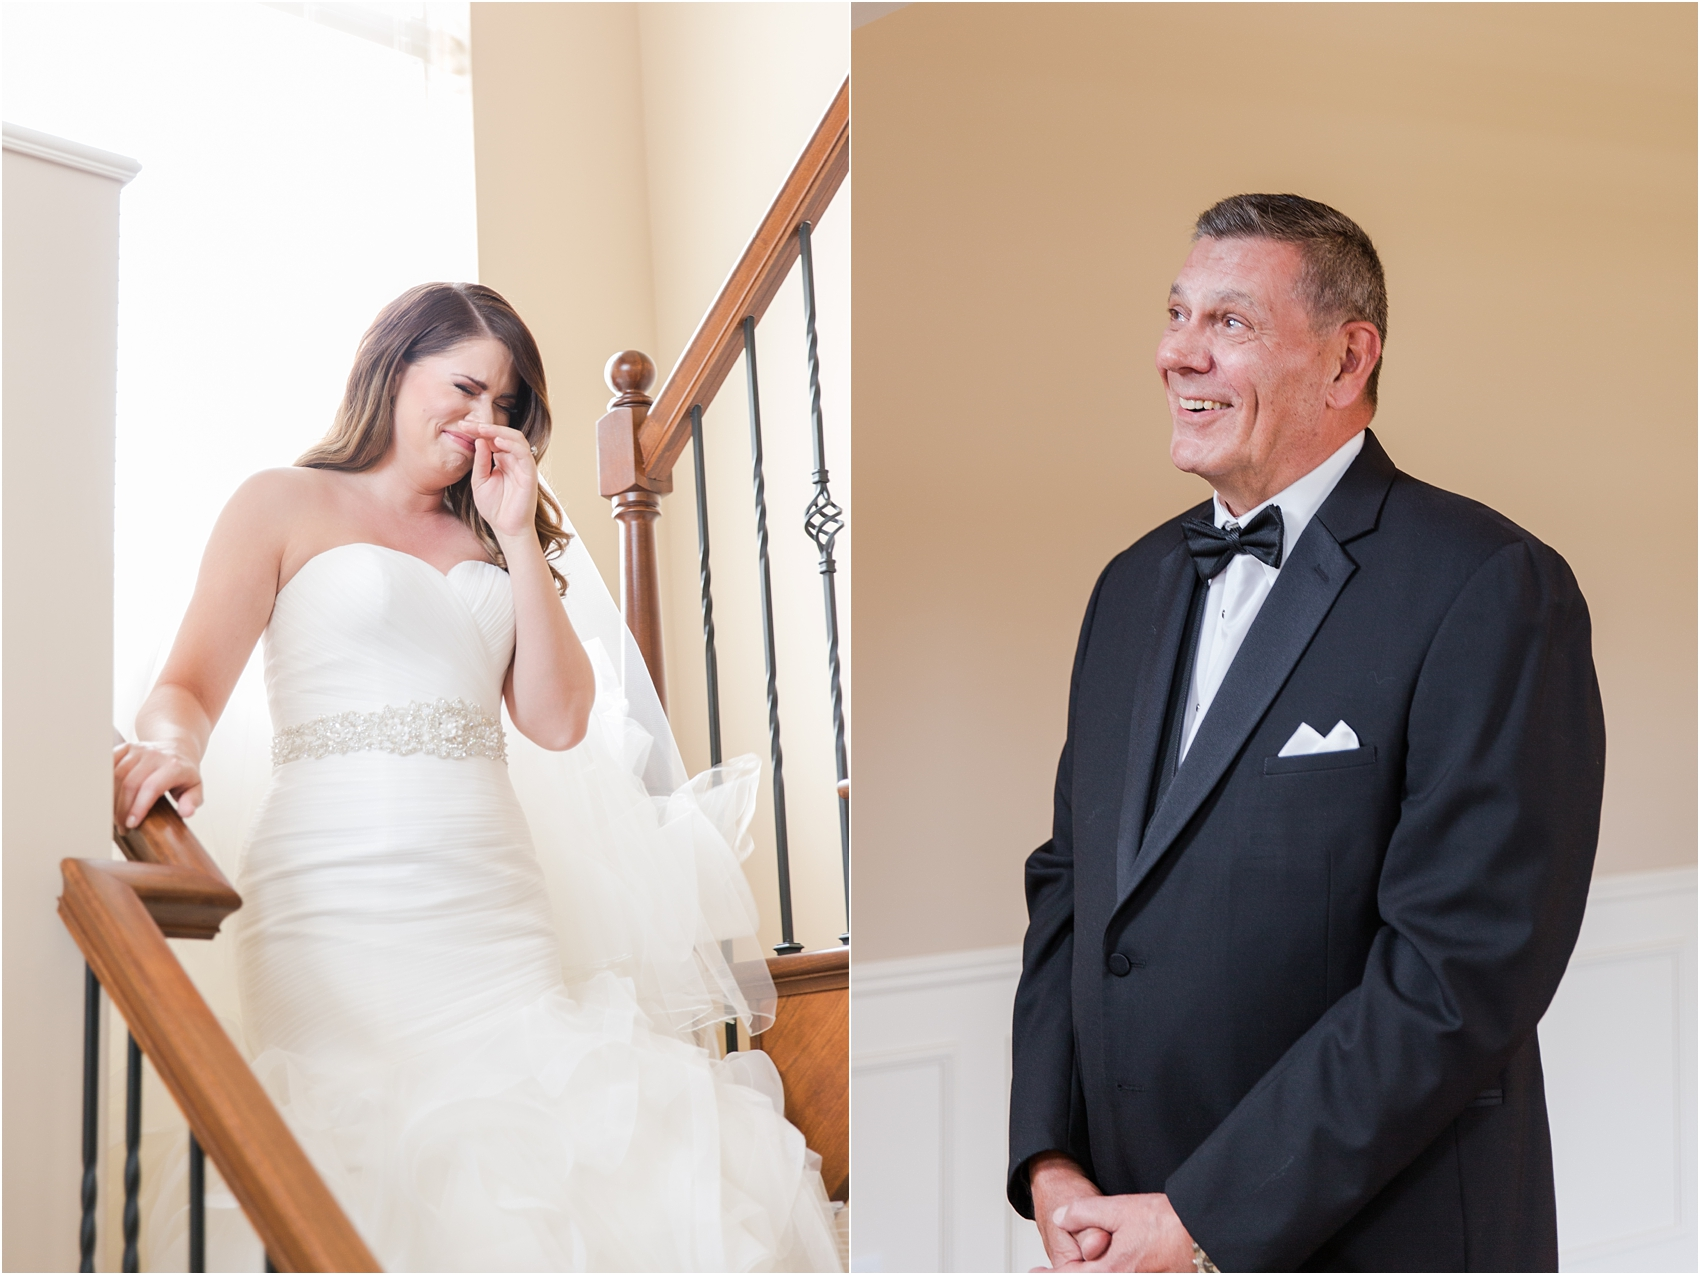 father-and-bride-share-emotional-first-look-on-wedding-day-photos-in-detroit-michigan-by-courtney-carolyn-photography_0012.jpg